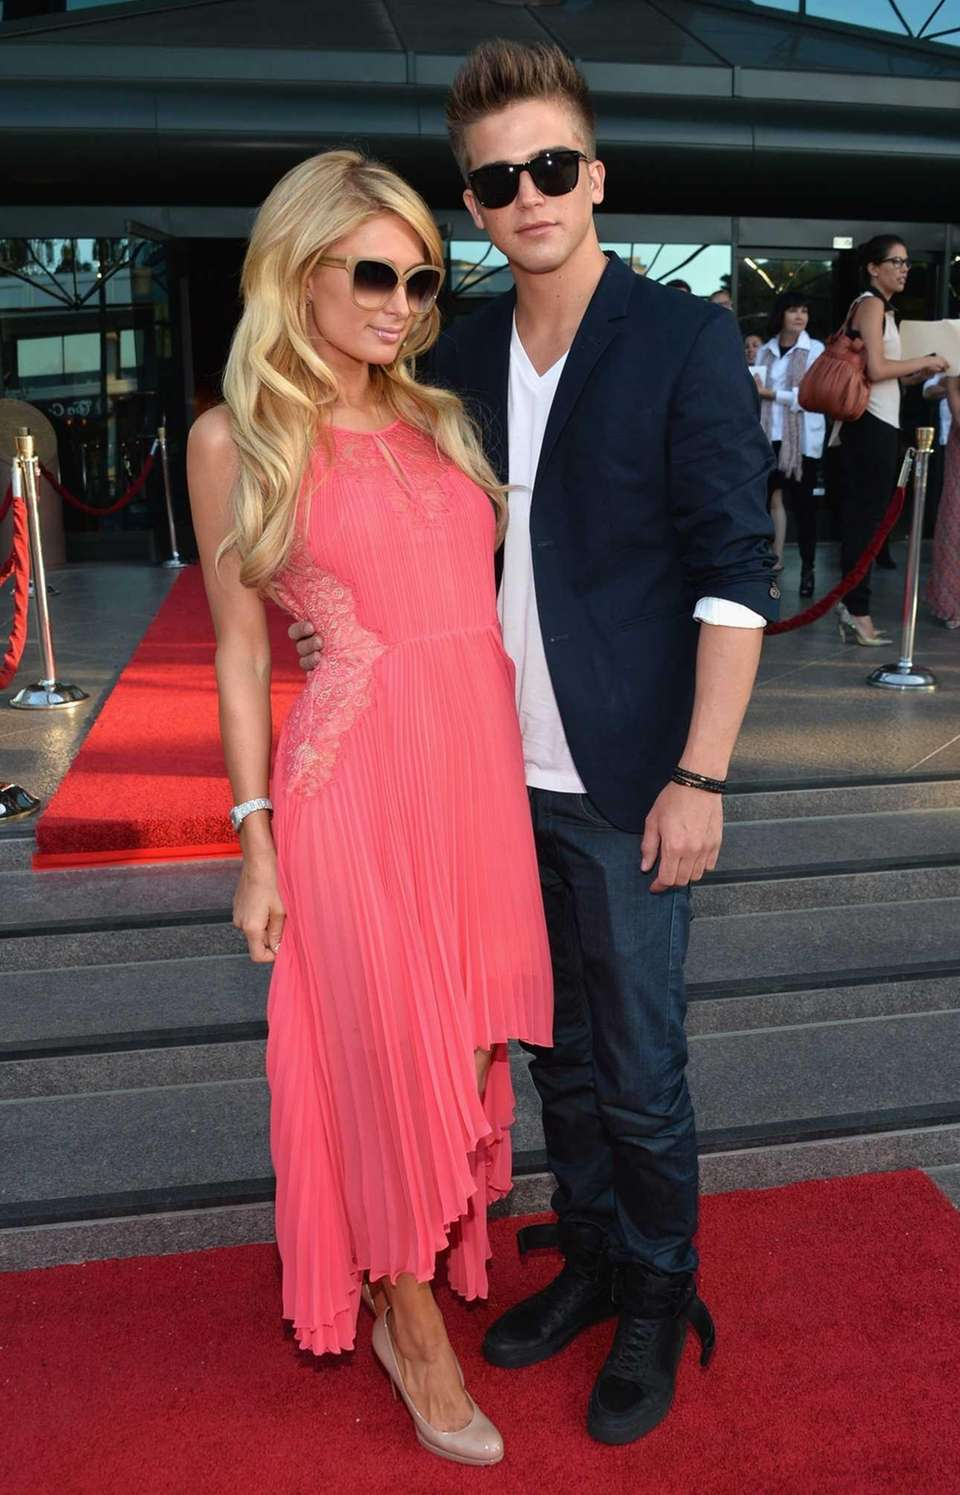 Paris Hilton stops to pose with model River